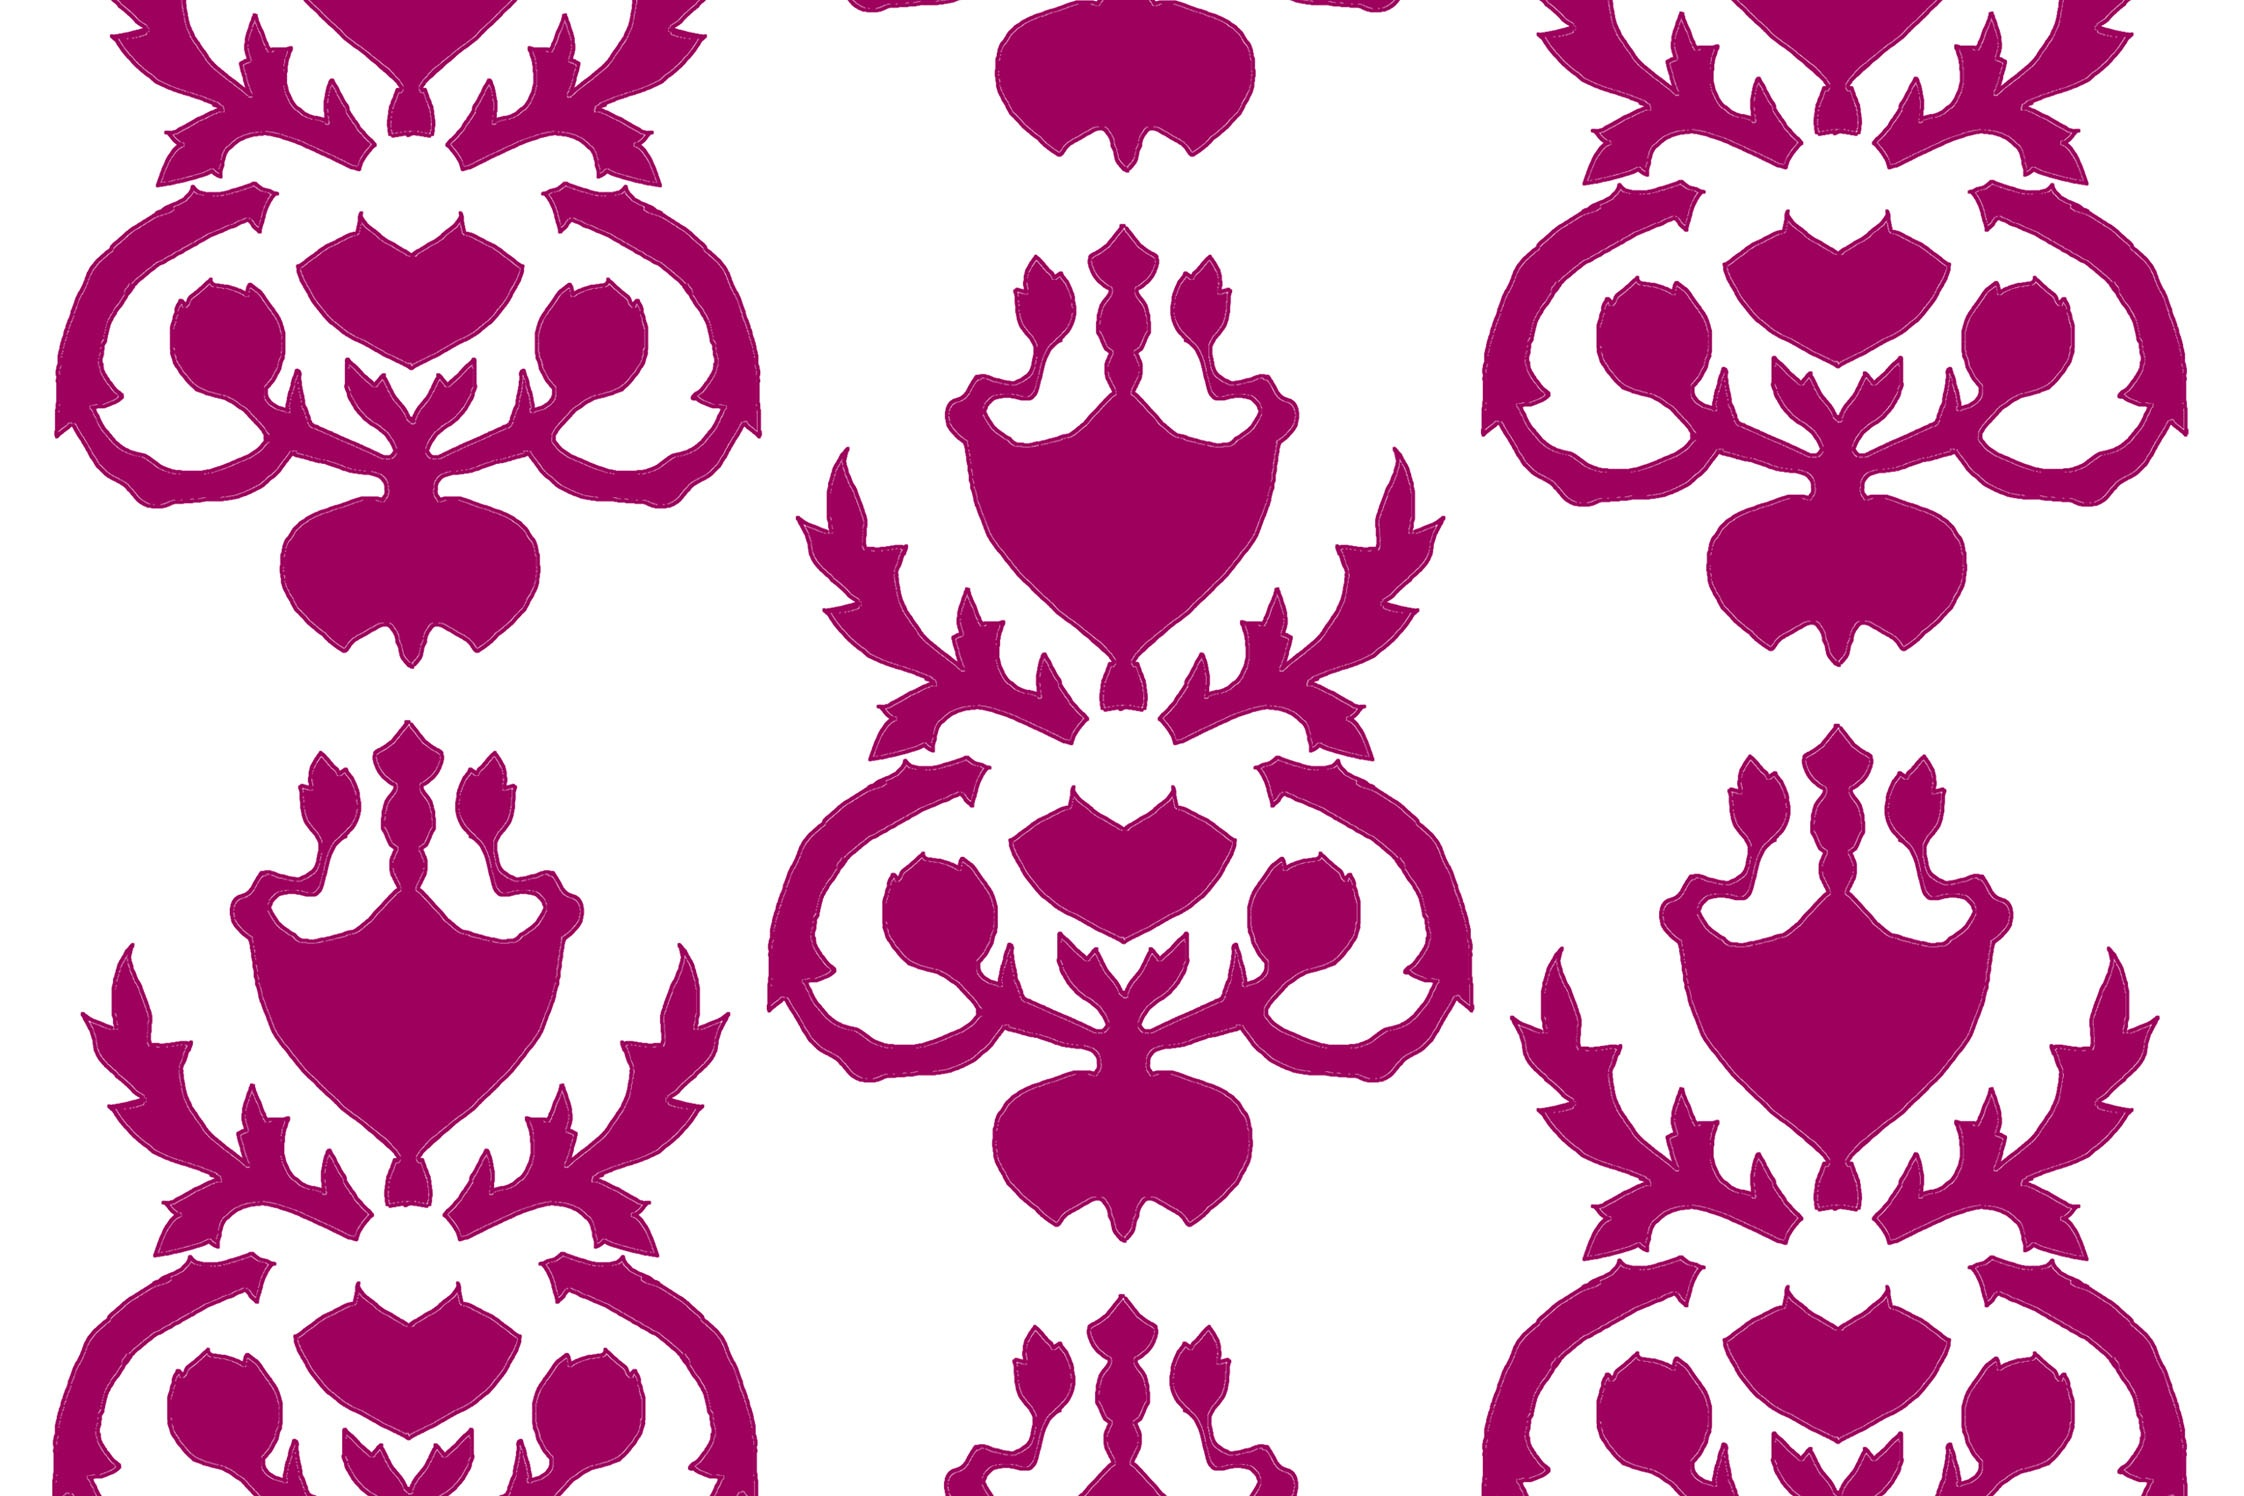 Jennifer McElwee. Wallpaper Thin (fragment). Design adapted from drawing room wallpaper in the home of Mr and Mrs Mars Buckley, Beaulieu, Toorak. 1880's.